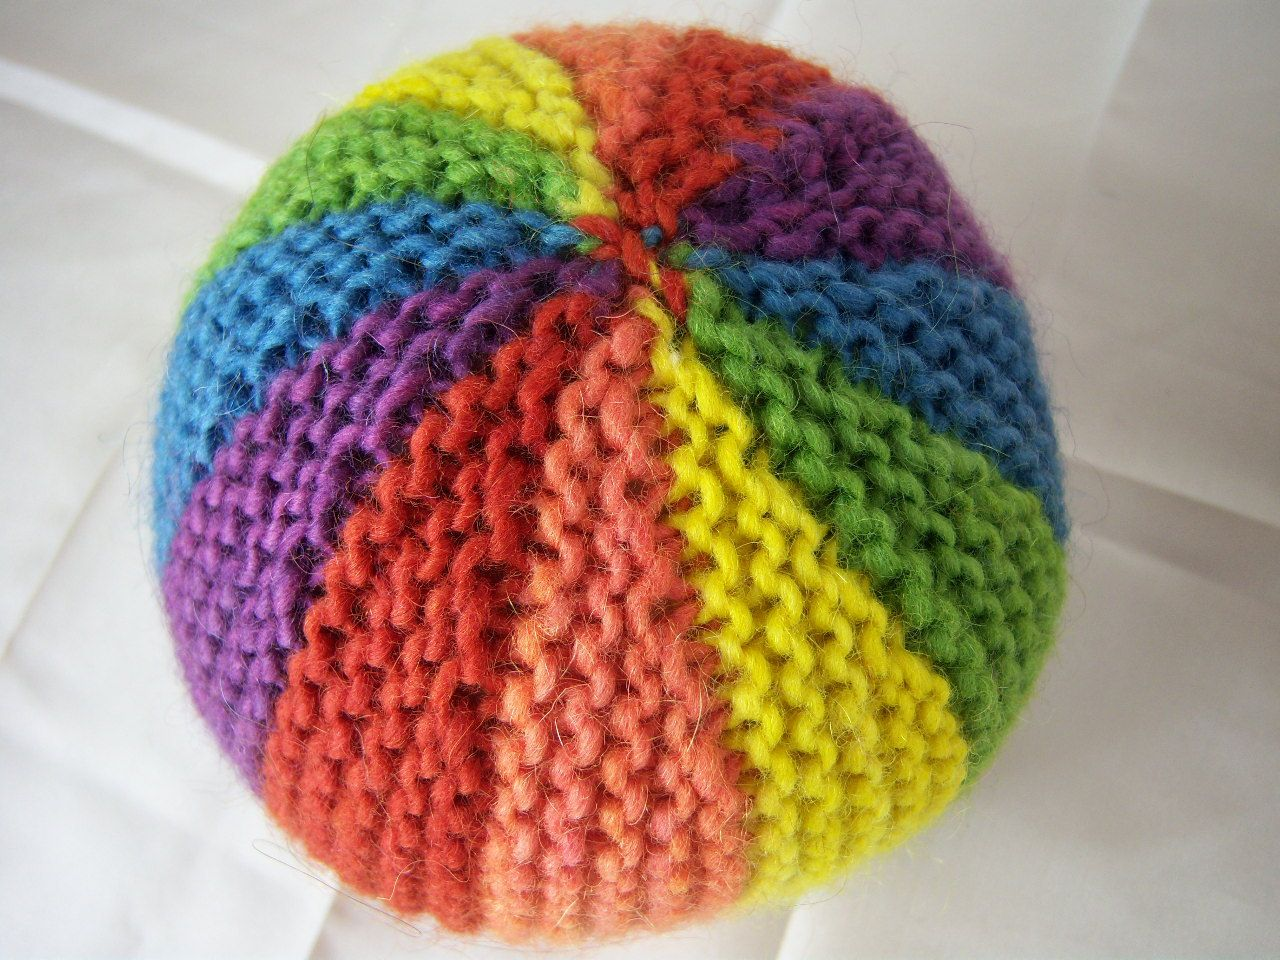 Rainbow Plant Dyed Wool Knitted Waldorf Ball Toy A Great Baby Toddler Gift. $16.00, via Etsy.